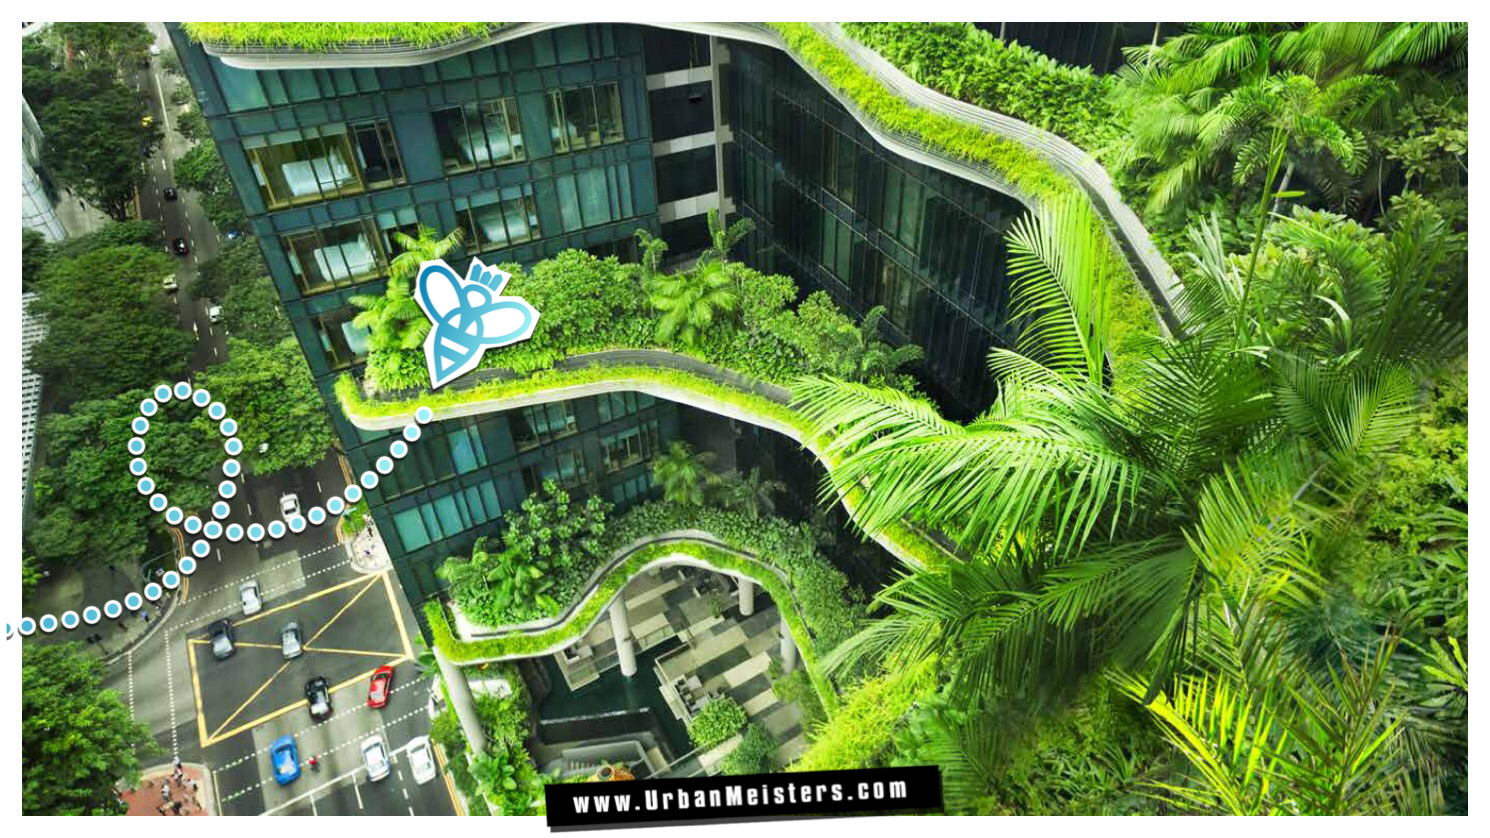 [Sustainable Architecture] WOHA: Making a GREEN & STYLISH urban future